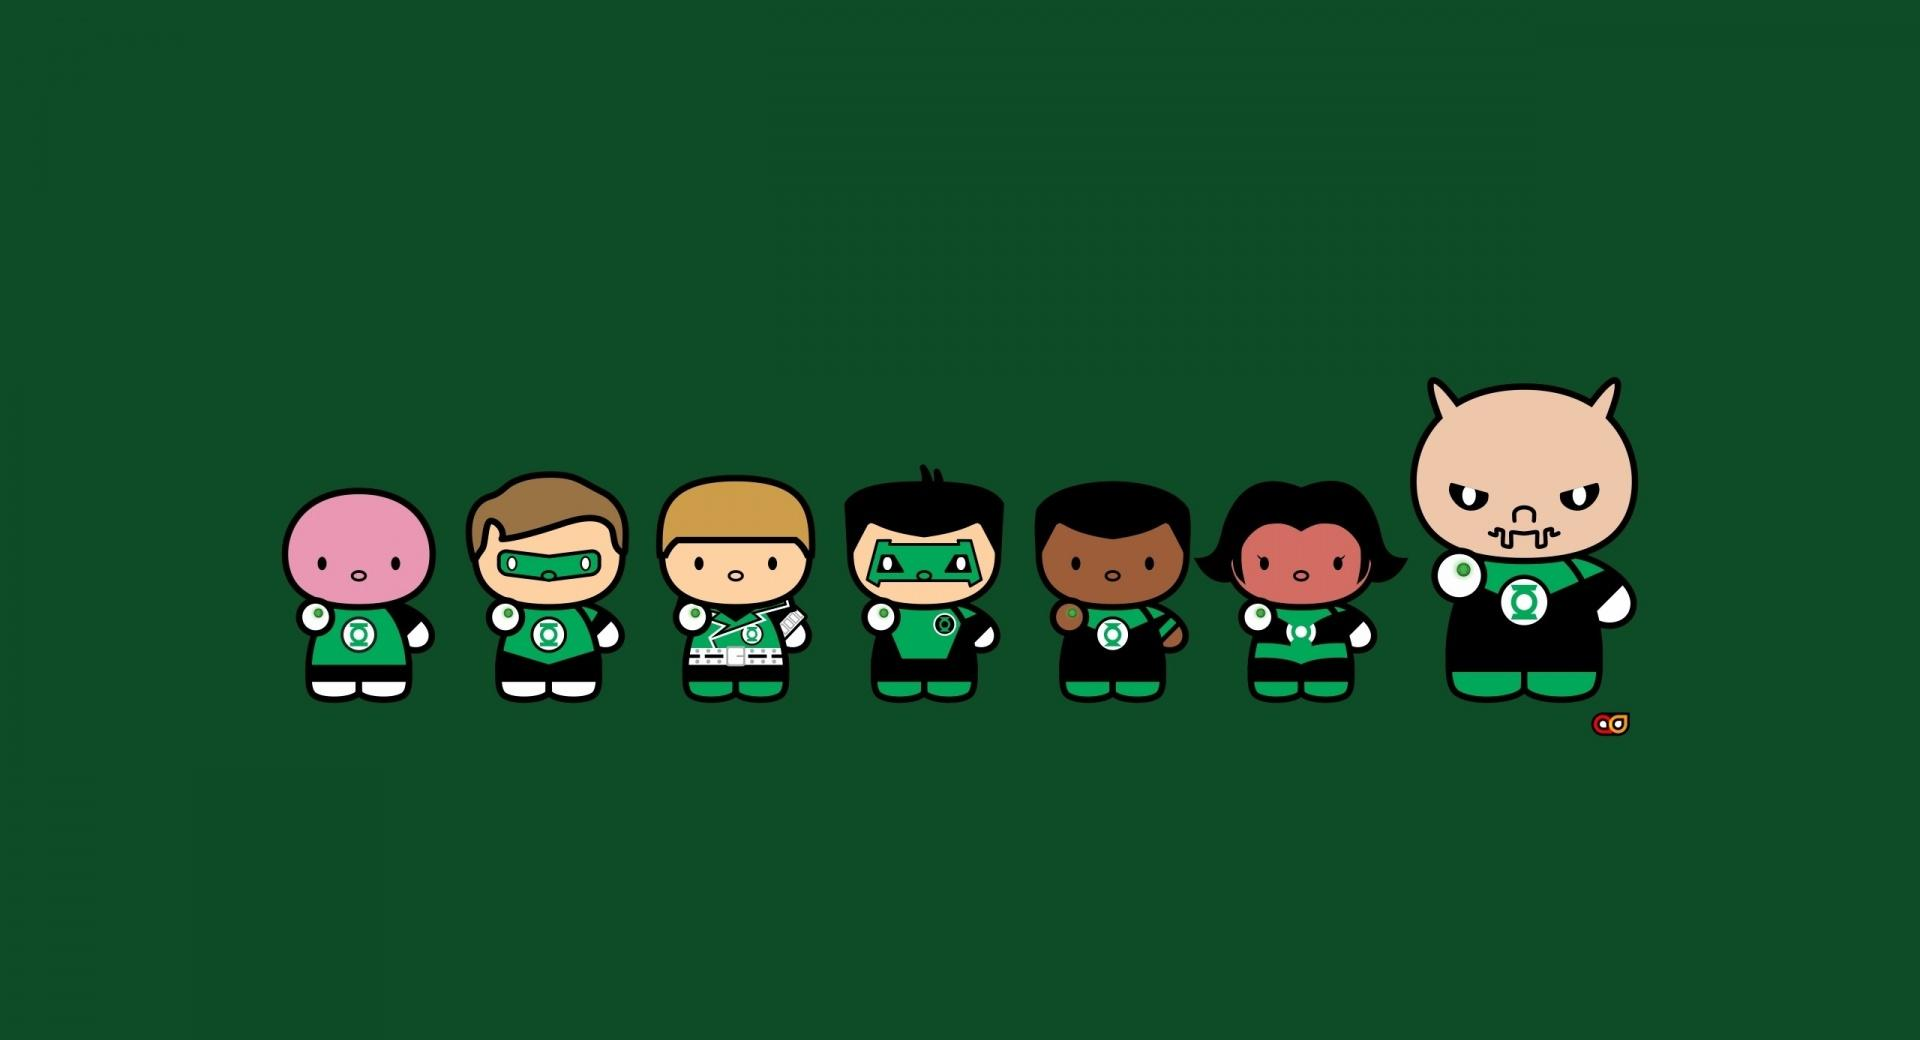 Chibi Green Lantern Corps wallpapers HD quality